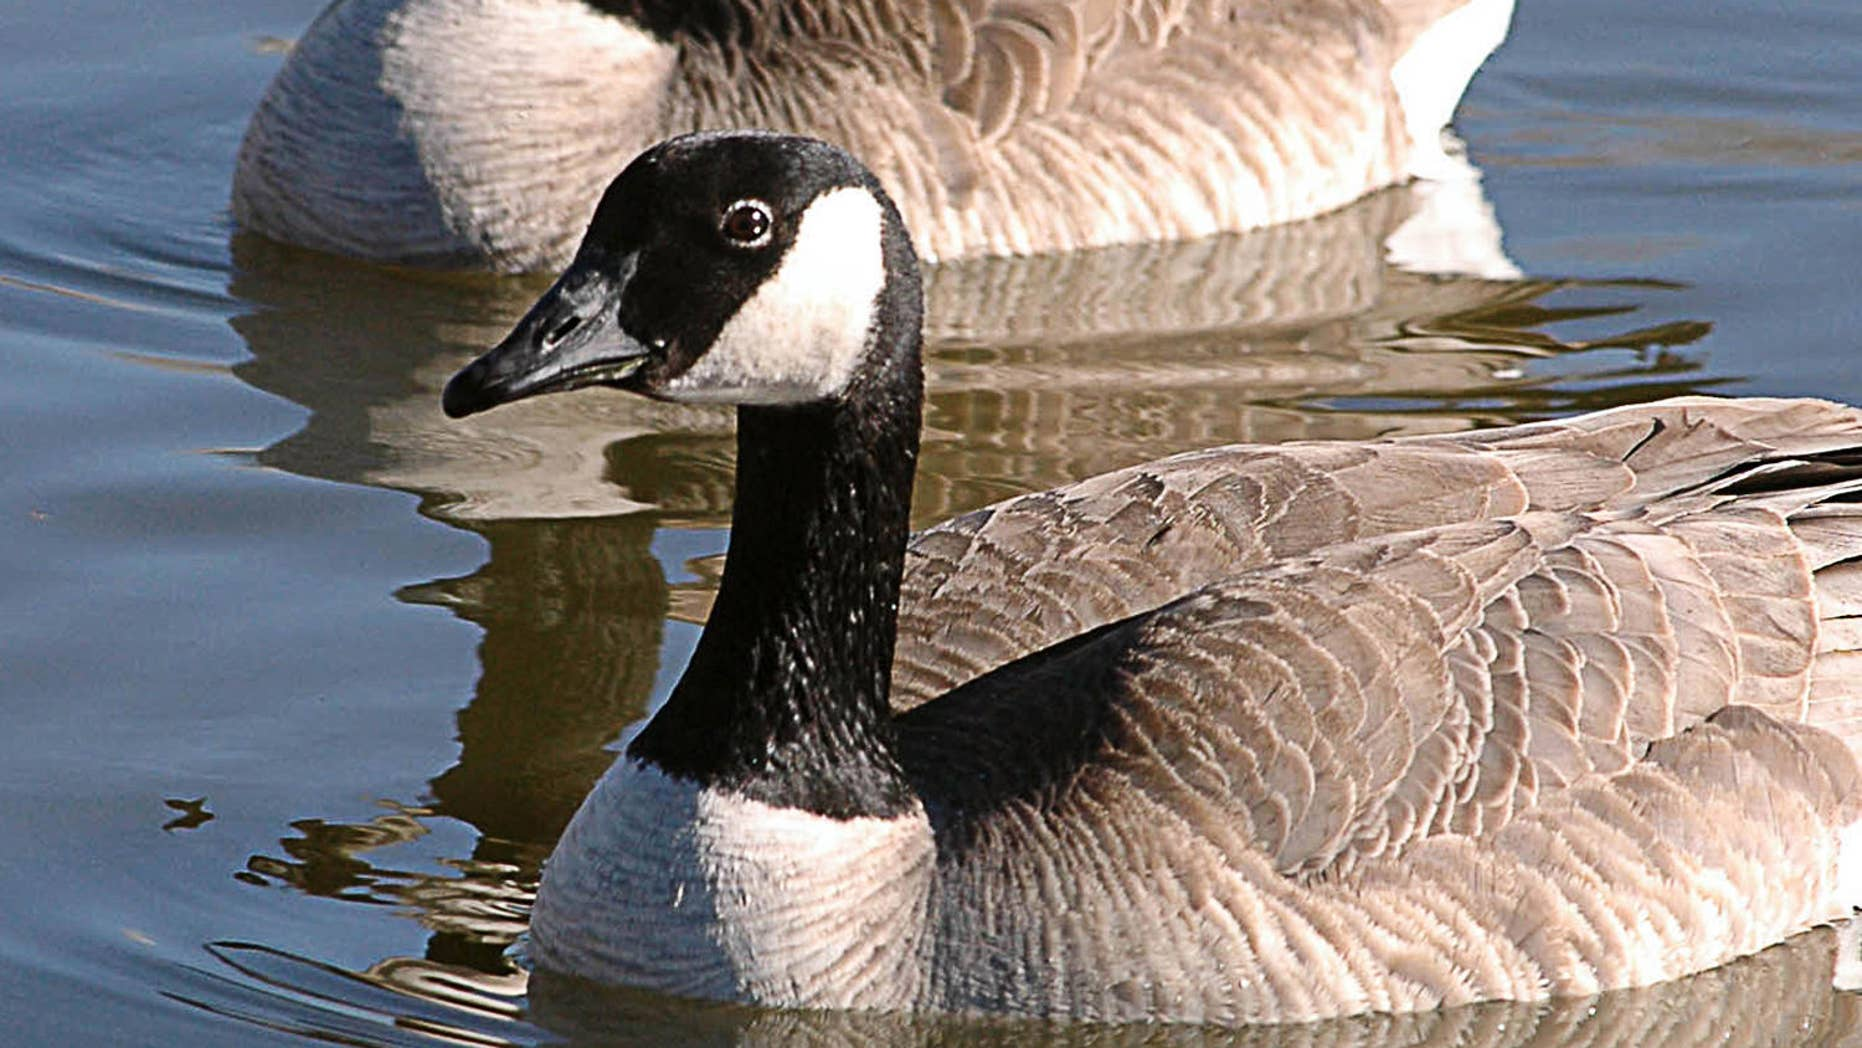 Two Canada geese soak up the sun on Capitol Lake Thursday, Feb. 3, 2005 near the State Capitol in Pierre, S.D. Warm temperatures throughout the area had people and animals alike basking in the sun and enjoying the warm winter day. (AP Photo/Doug Dreyer)